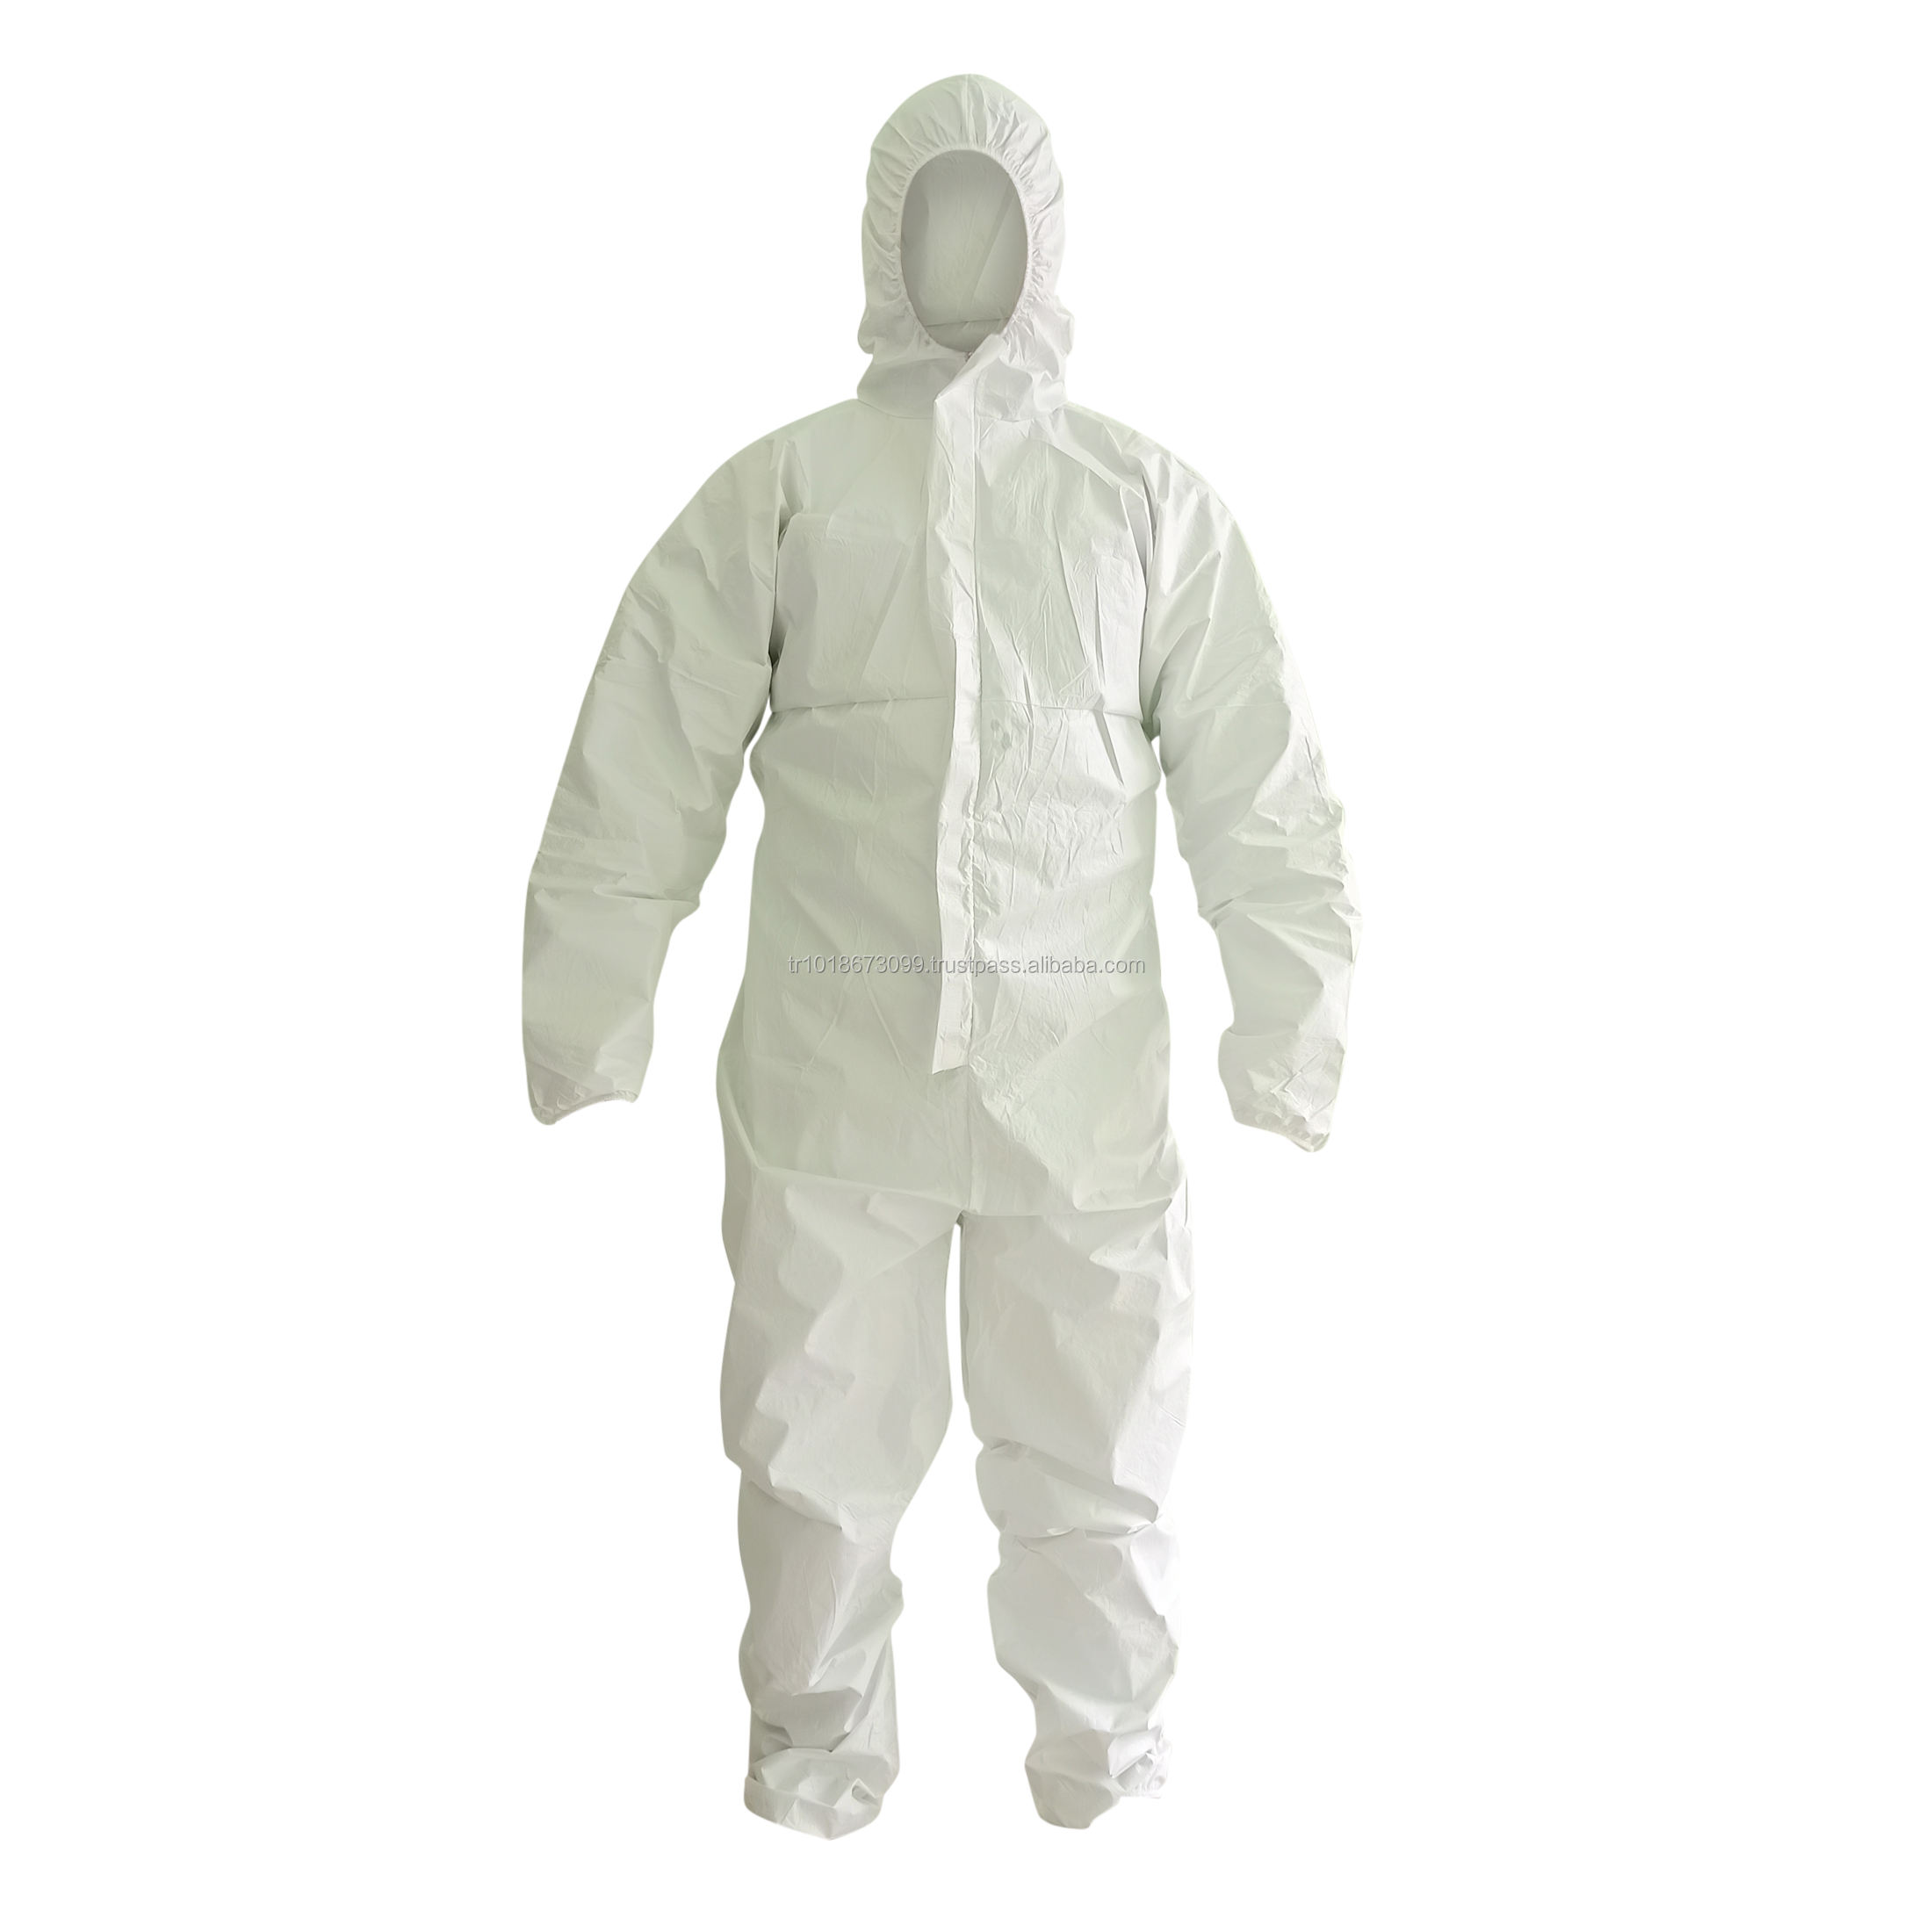 Coverall full protect Suit from Turkey medical staff Protective Clothing Category III L,XL,XXL Type 5 and 6, CE Certified